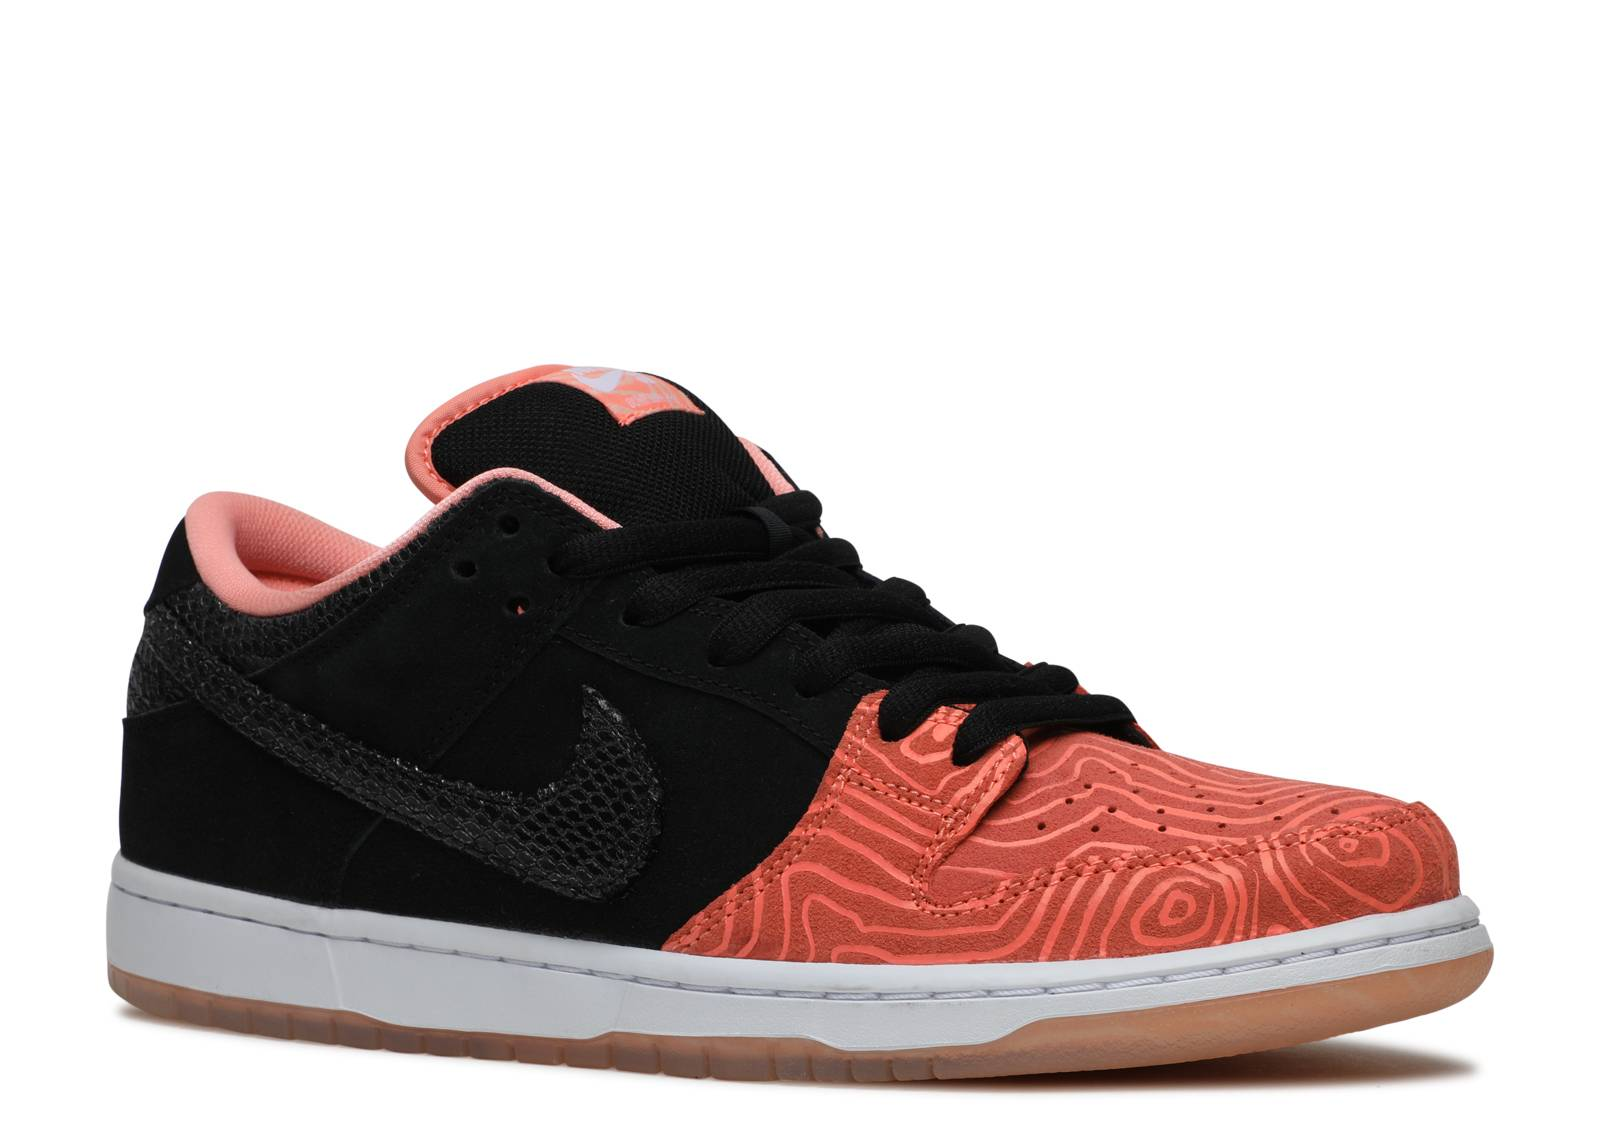 Dunk low premium sb premier fish ladder nike 313170 for Fish nike shoes